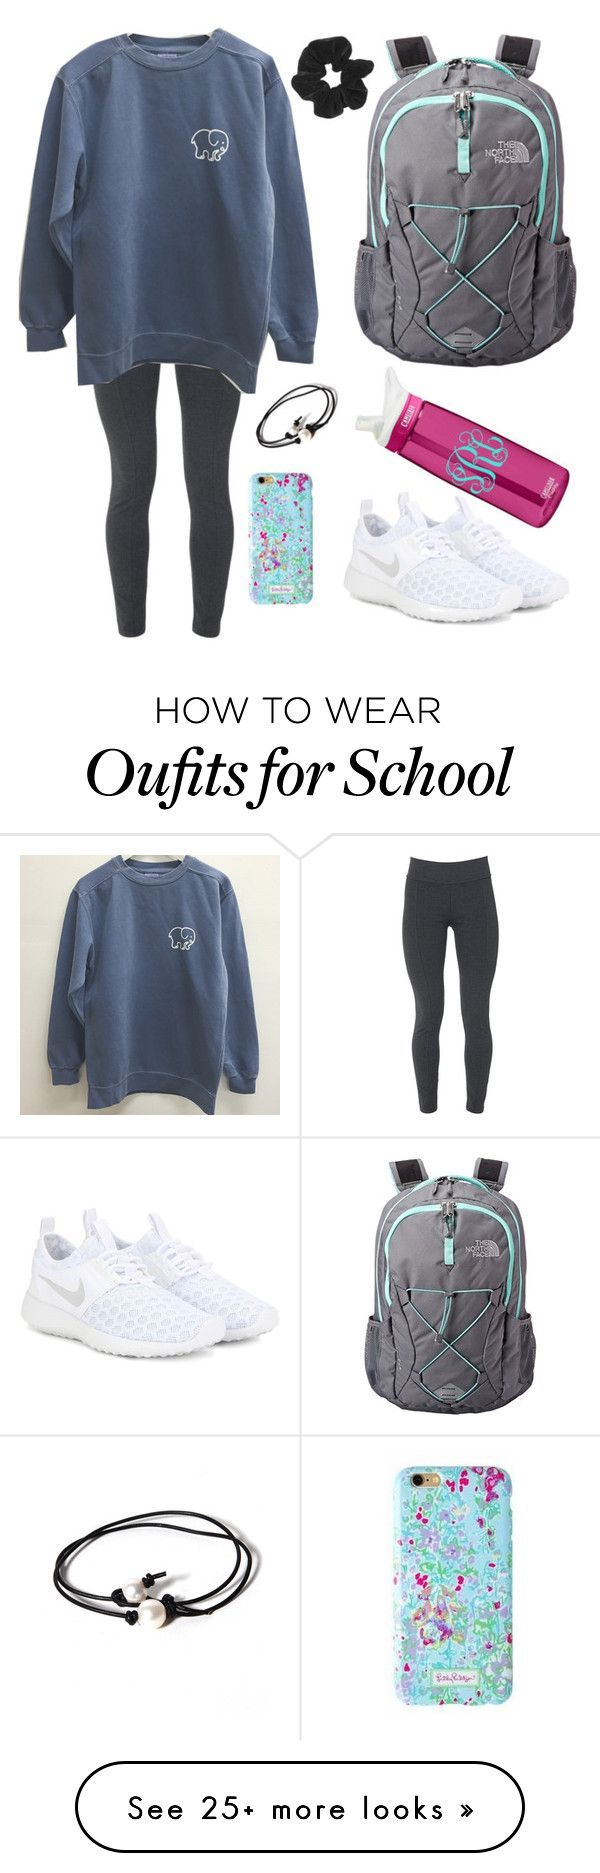 """""""school day"""" by jazmintorres1 on Polyvore featuring Fabrizio Gianni, NIKE, The North Face, Lilly Pulitzer, CamelBak, Joie, Topshop, women's clothing, women and female"""